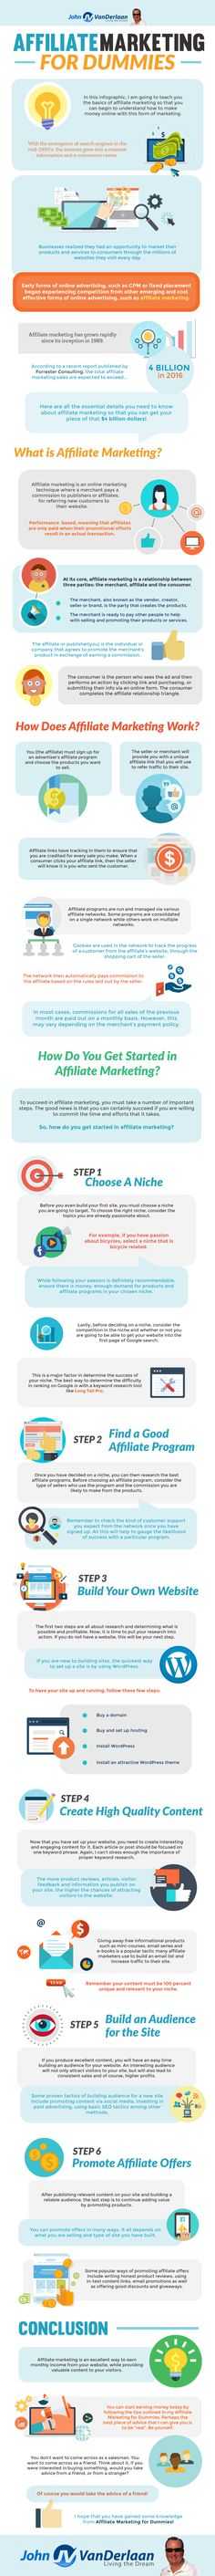 Affiliate marketing is a $4 billion industry. That's a pretty big pie. So the question is, how do you get some of that? Luckily, John VanDerlaan created an infographic that tells you everything you need to know about affiliate marketing: Source: John VanDerlaan